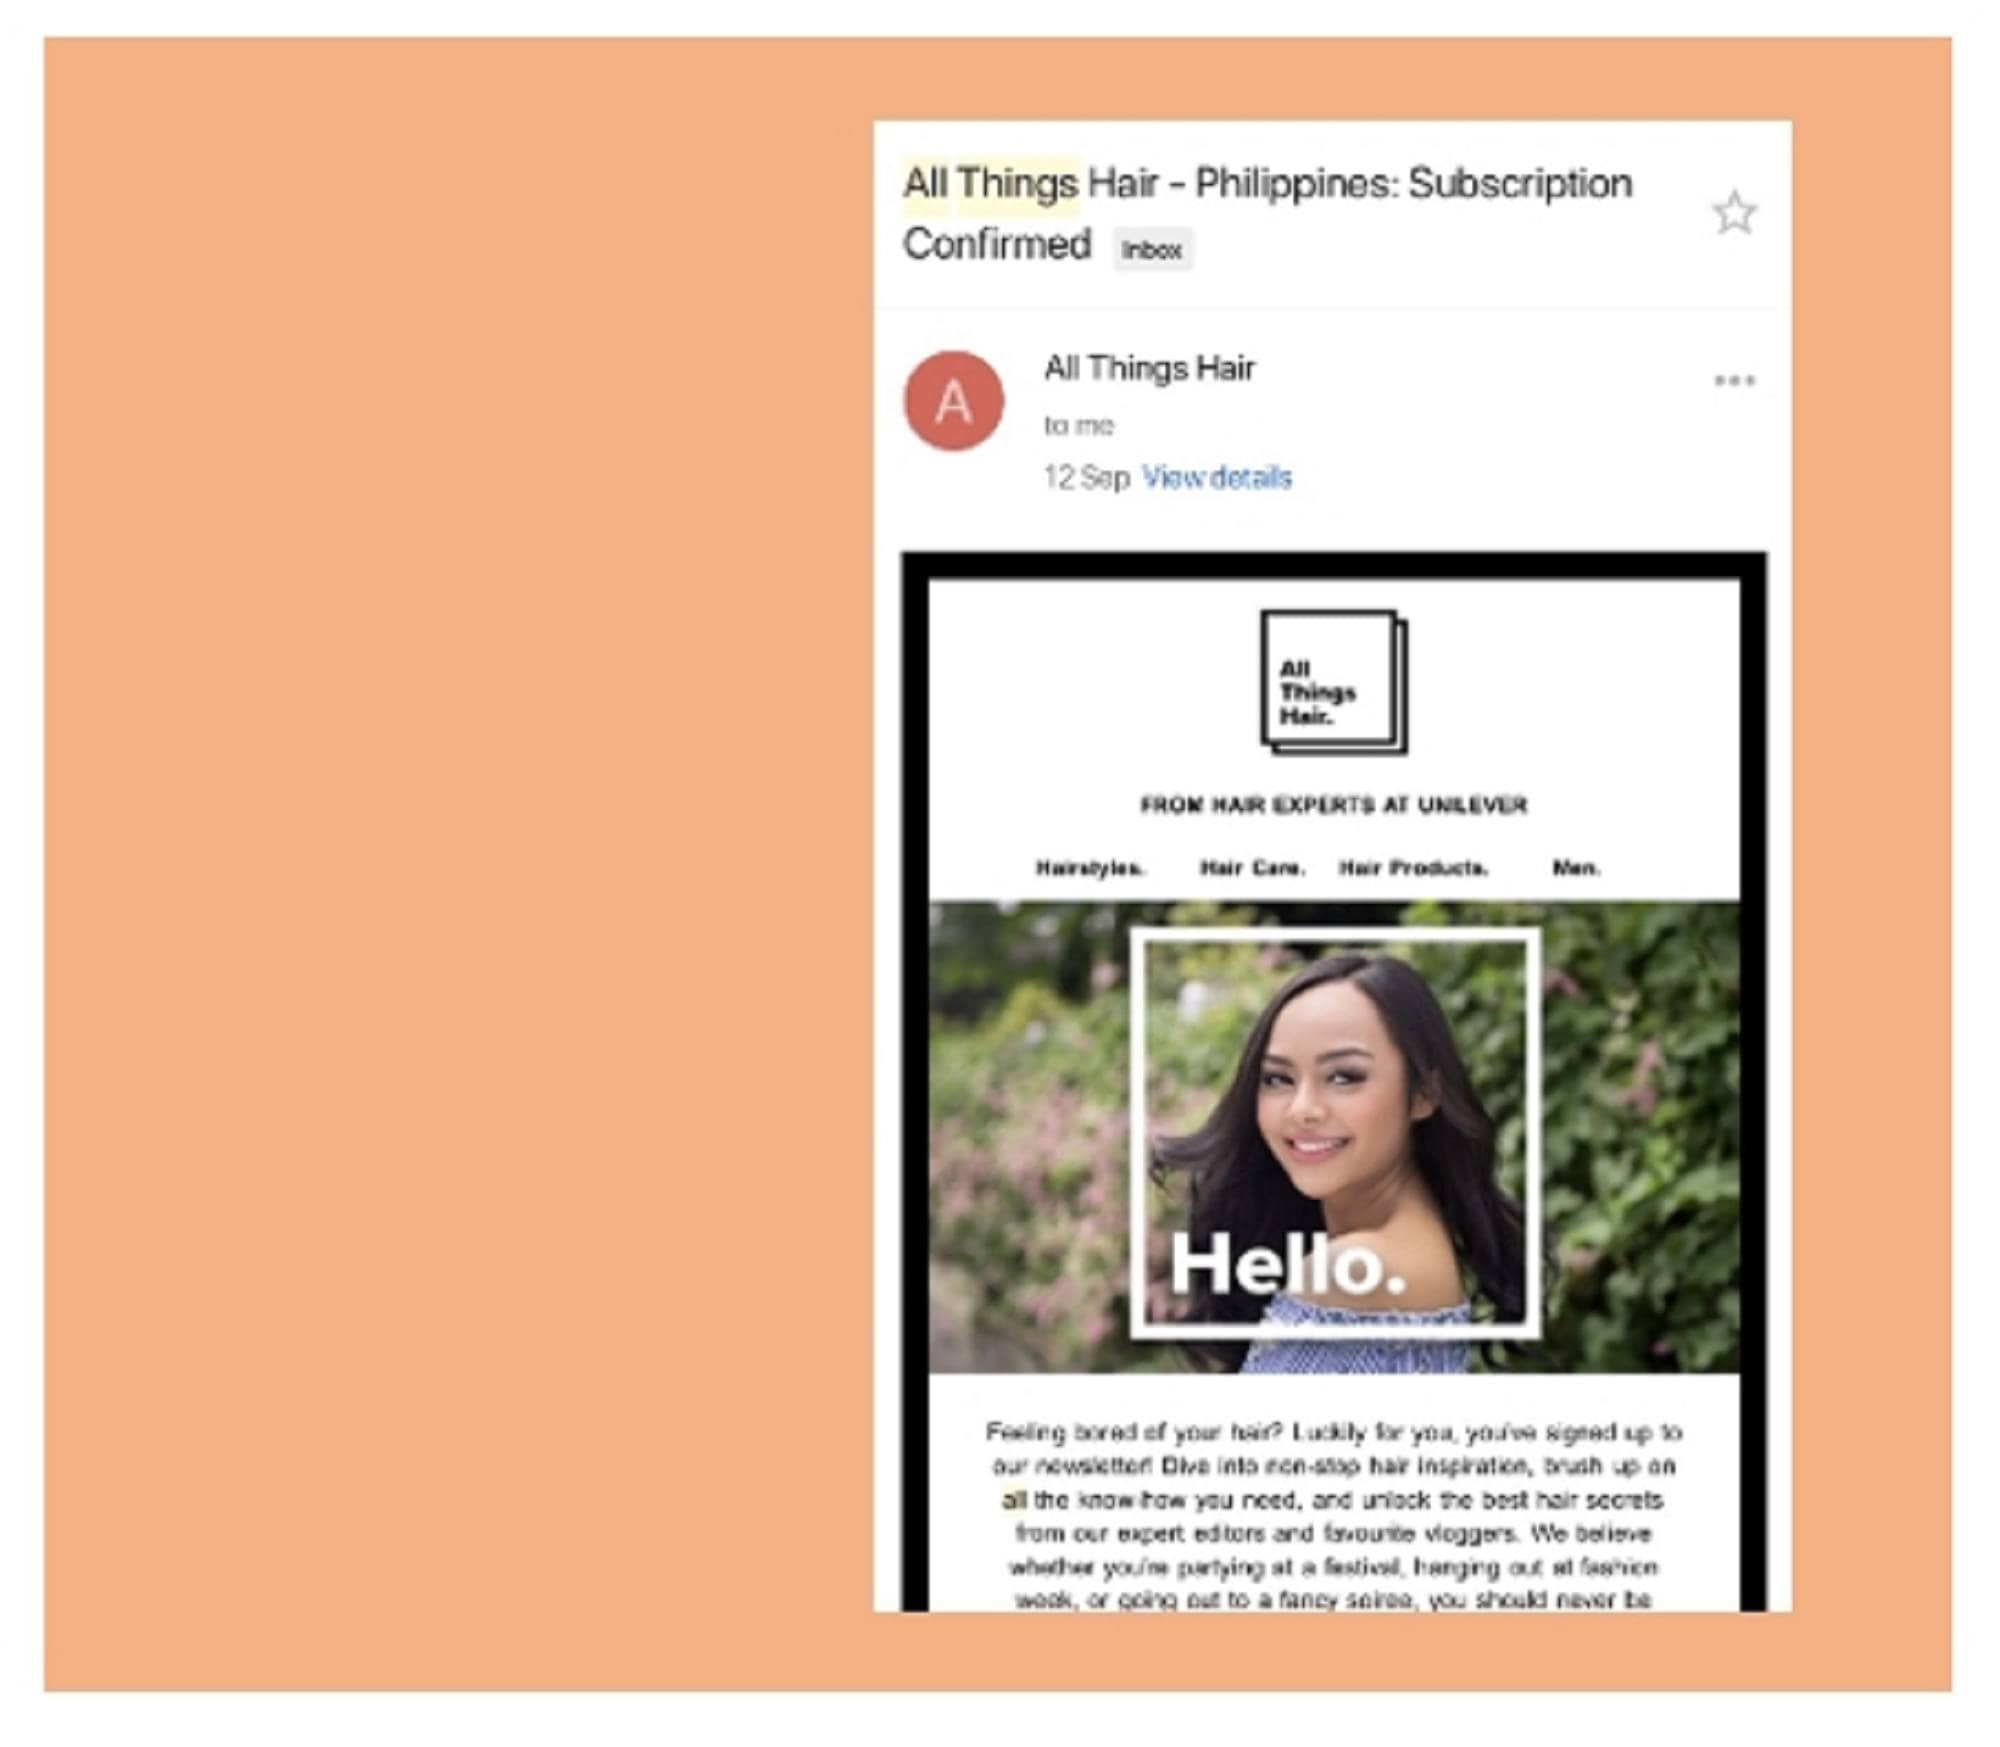 All things hair live x Jay Wee: screenshot of email subscription